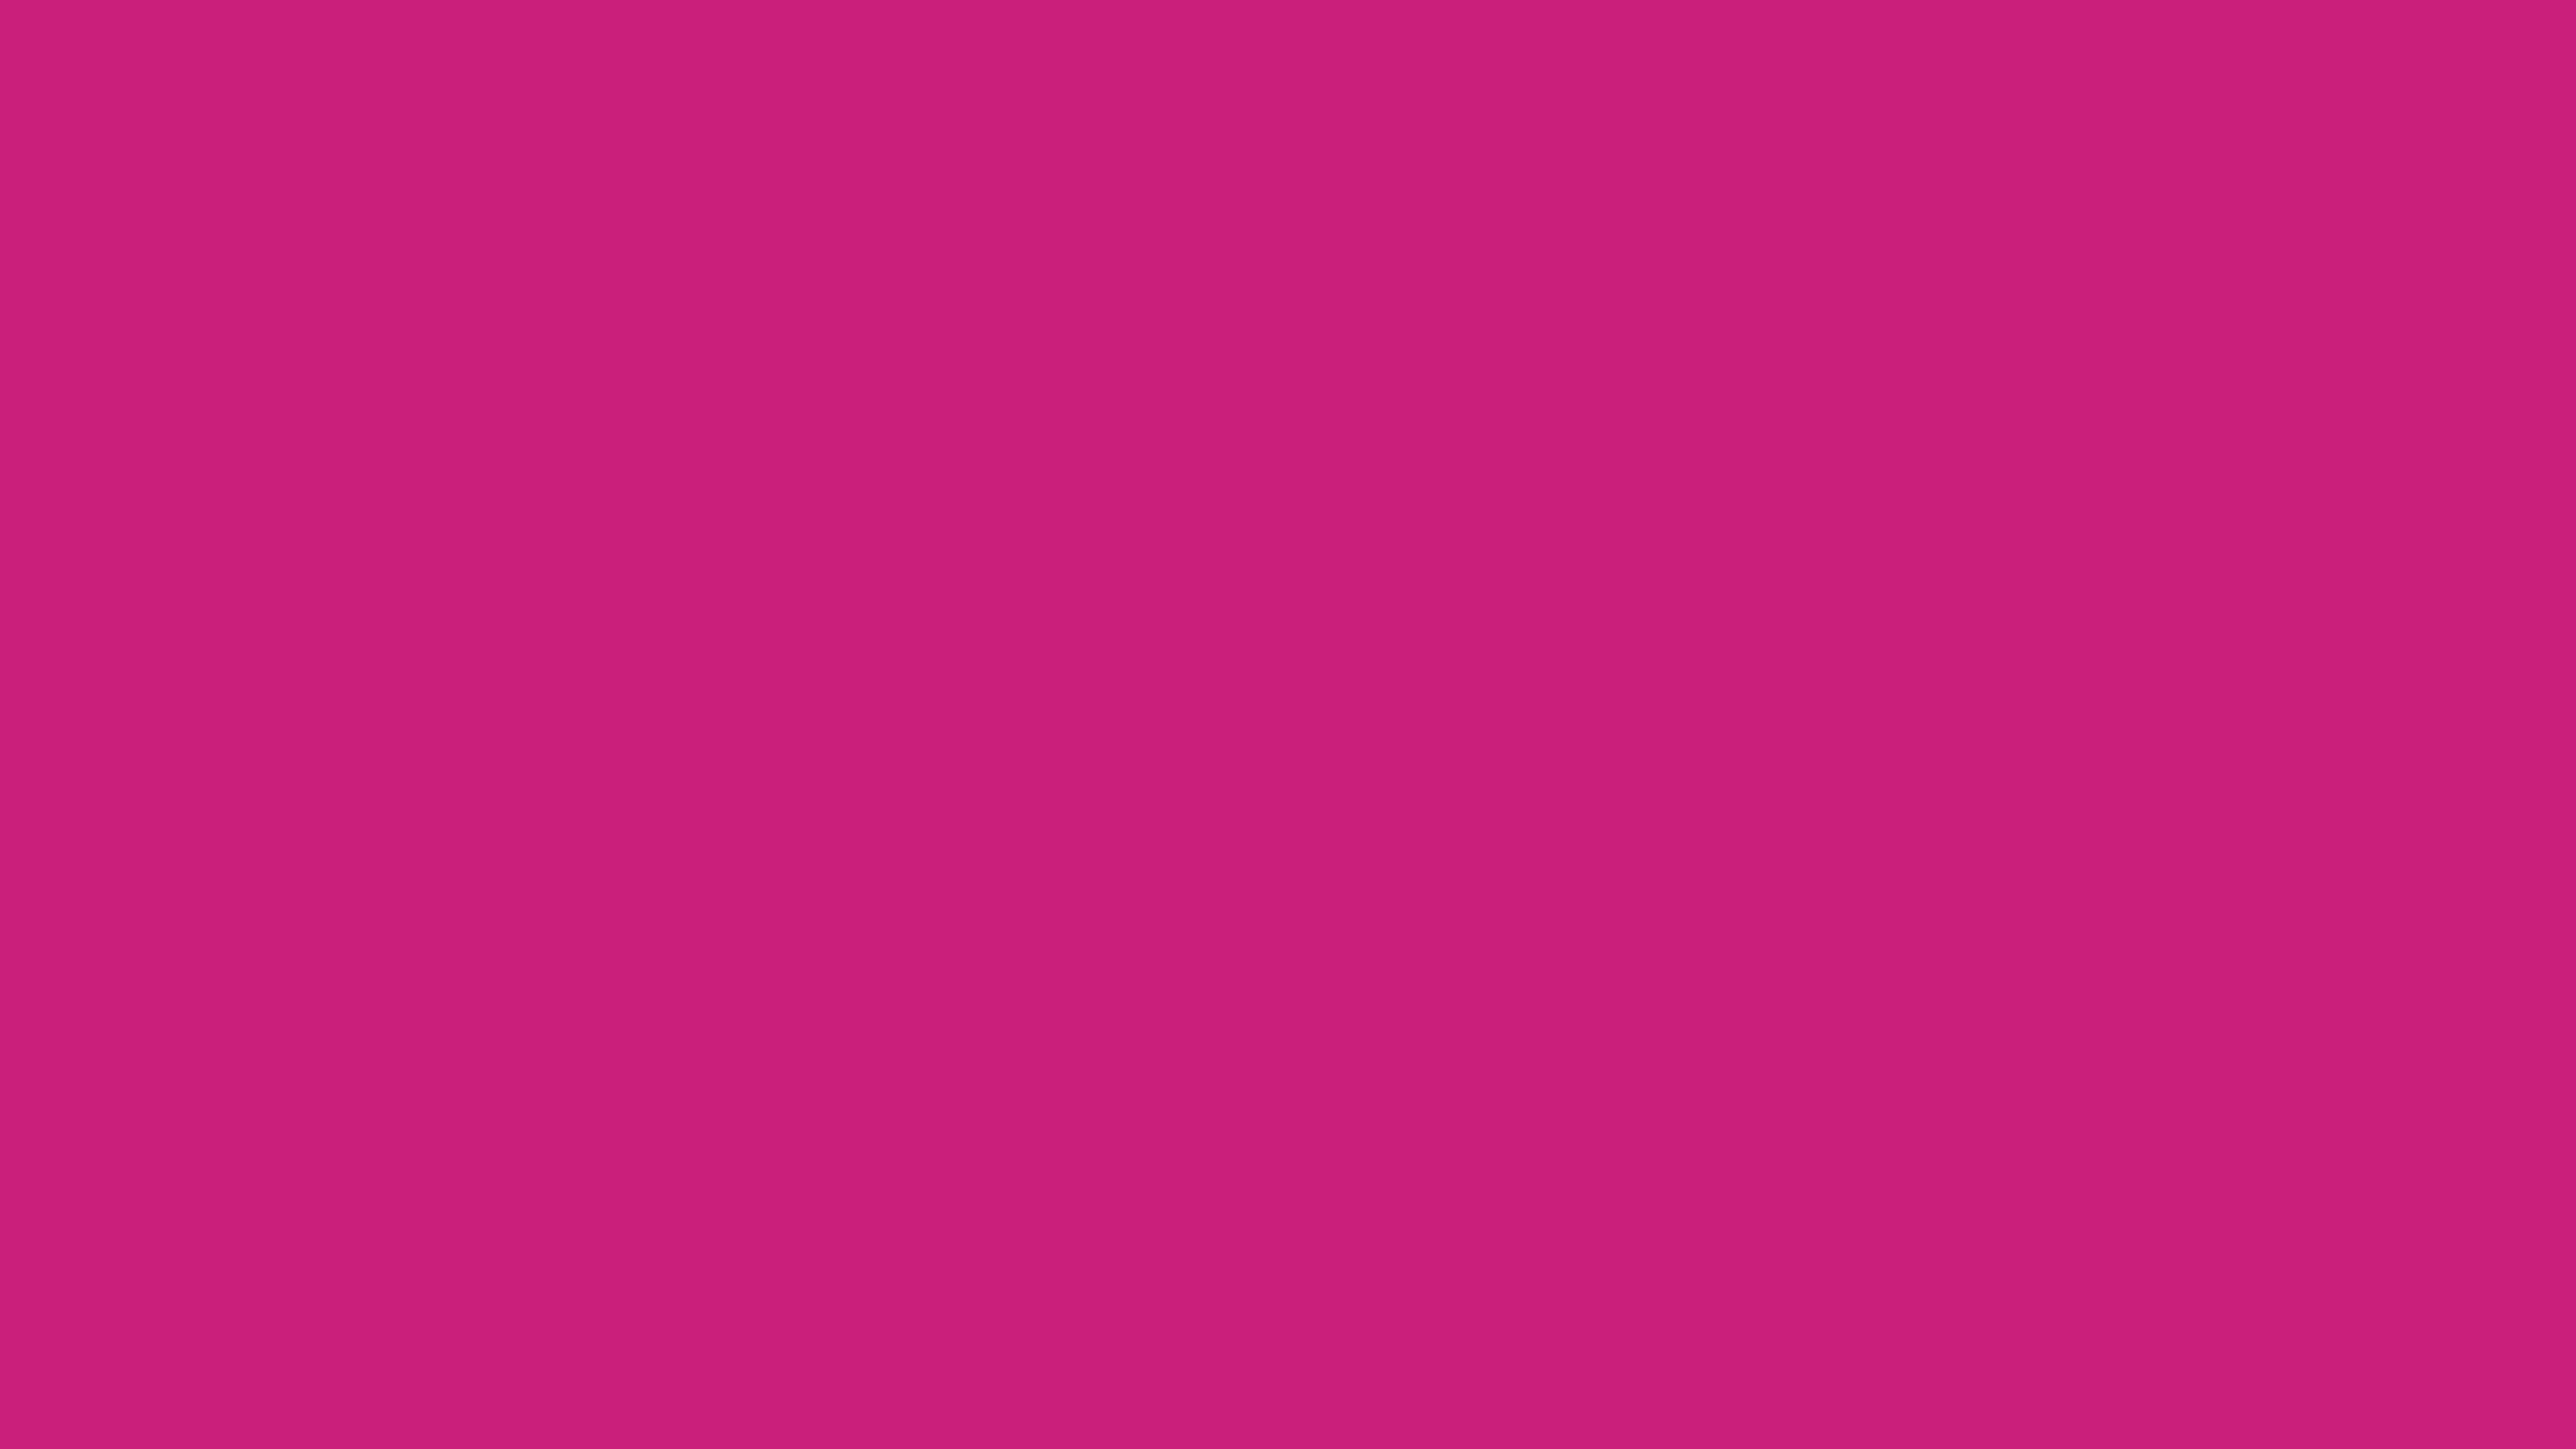 4096x2304 Magenta Dye Solid Color Background